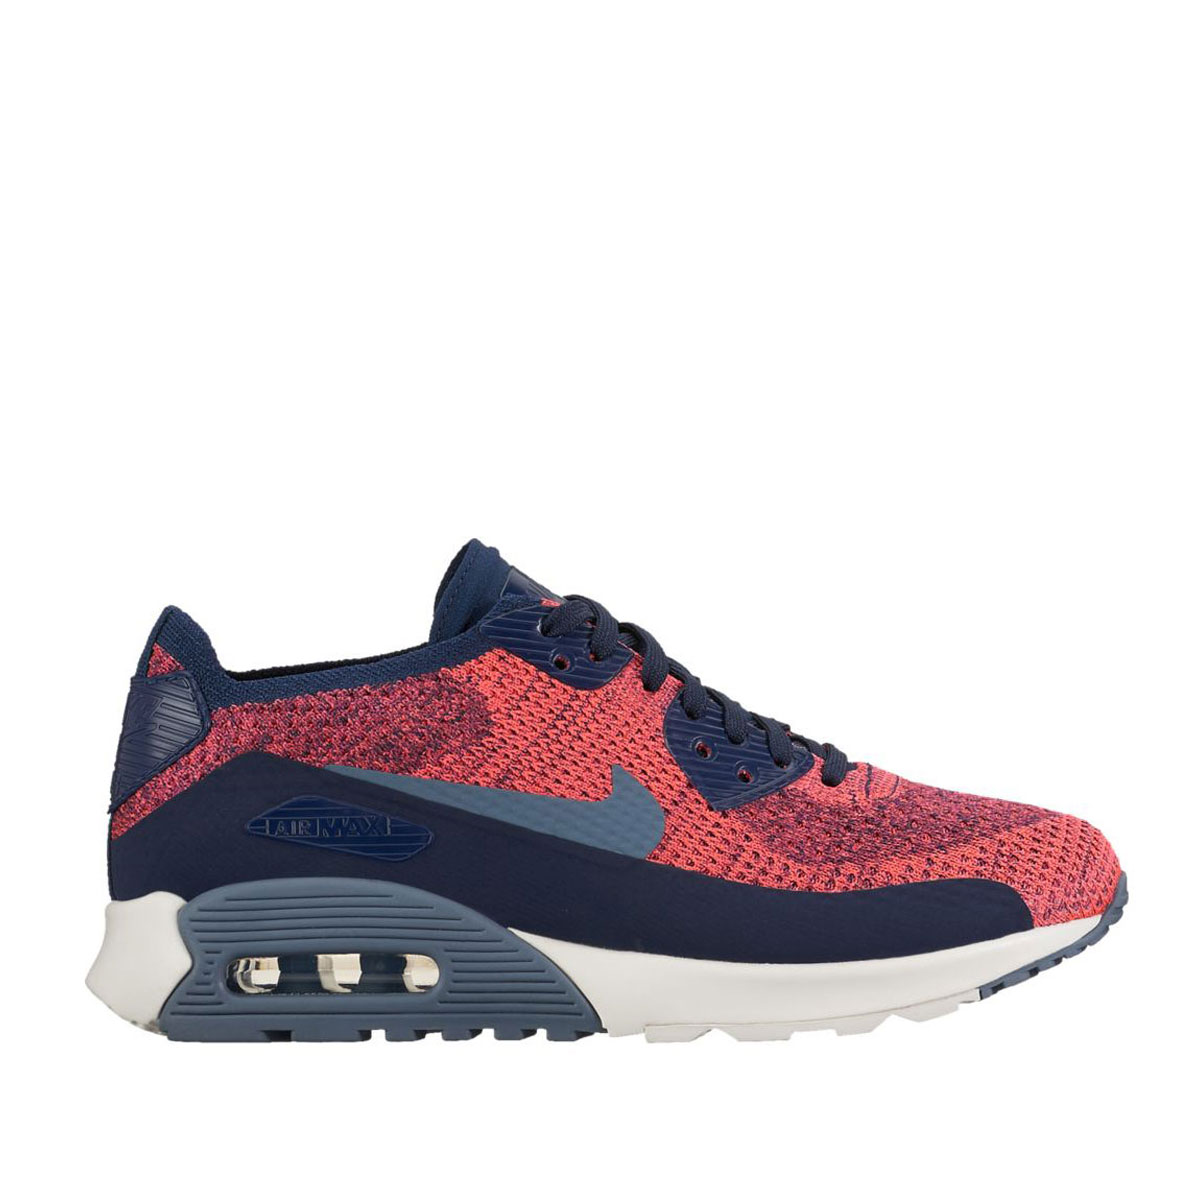 a29c290f6be9 The full-length PU mid sole which was equipped with a large heel air sole  unit. The out sole is a waffle rubber design. AIR MAX 90 which ...